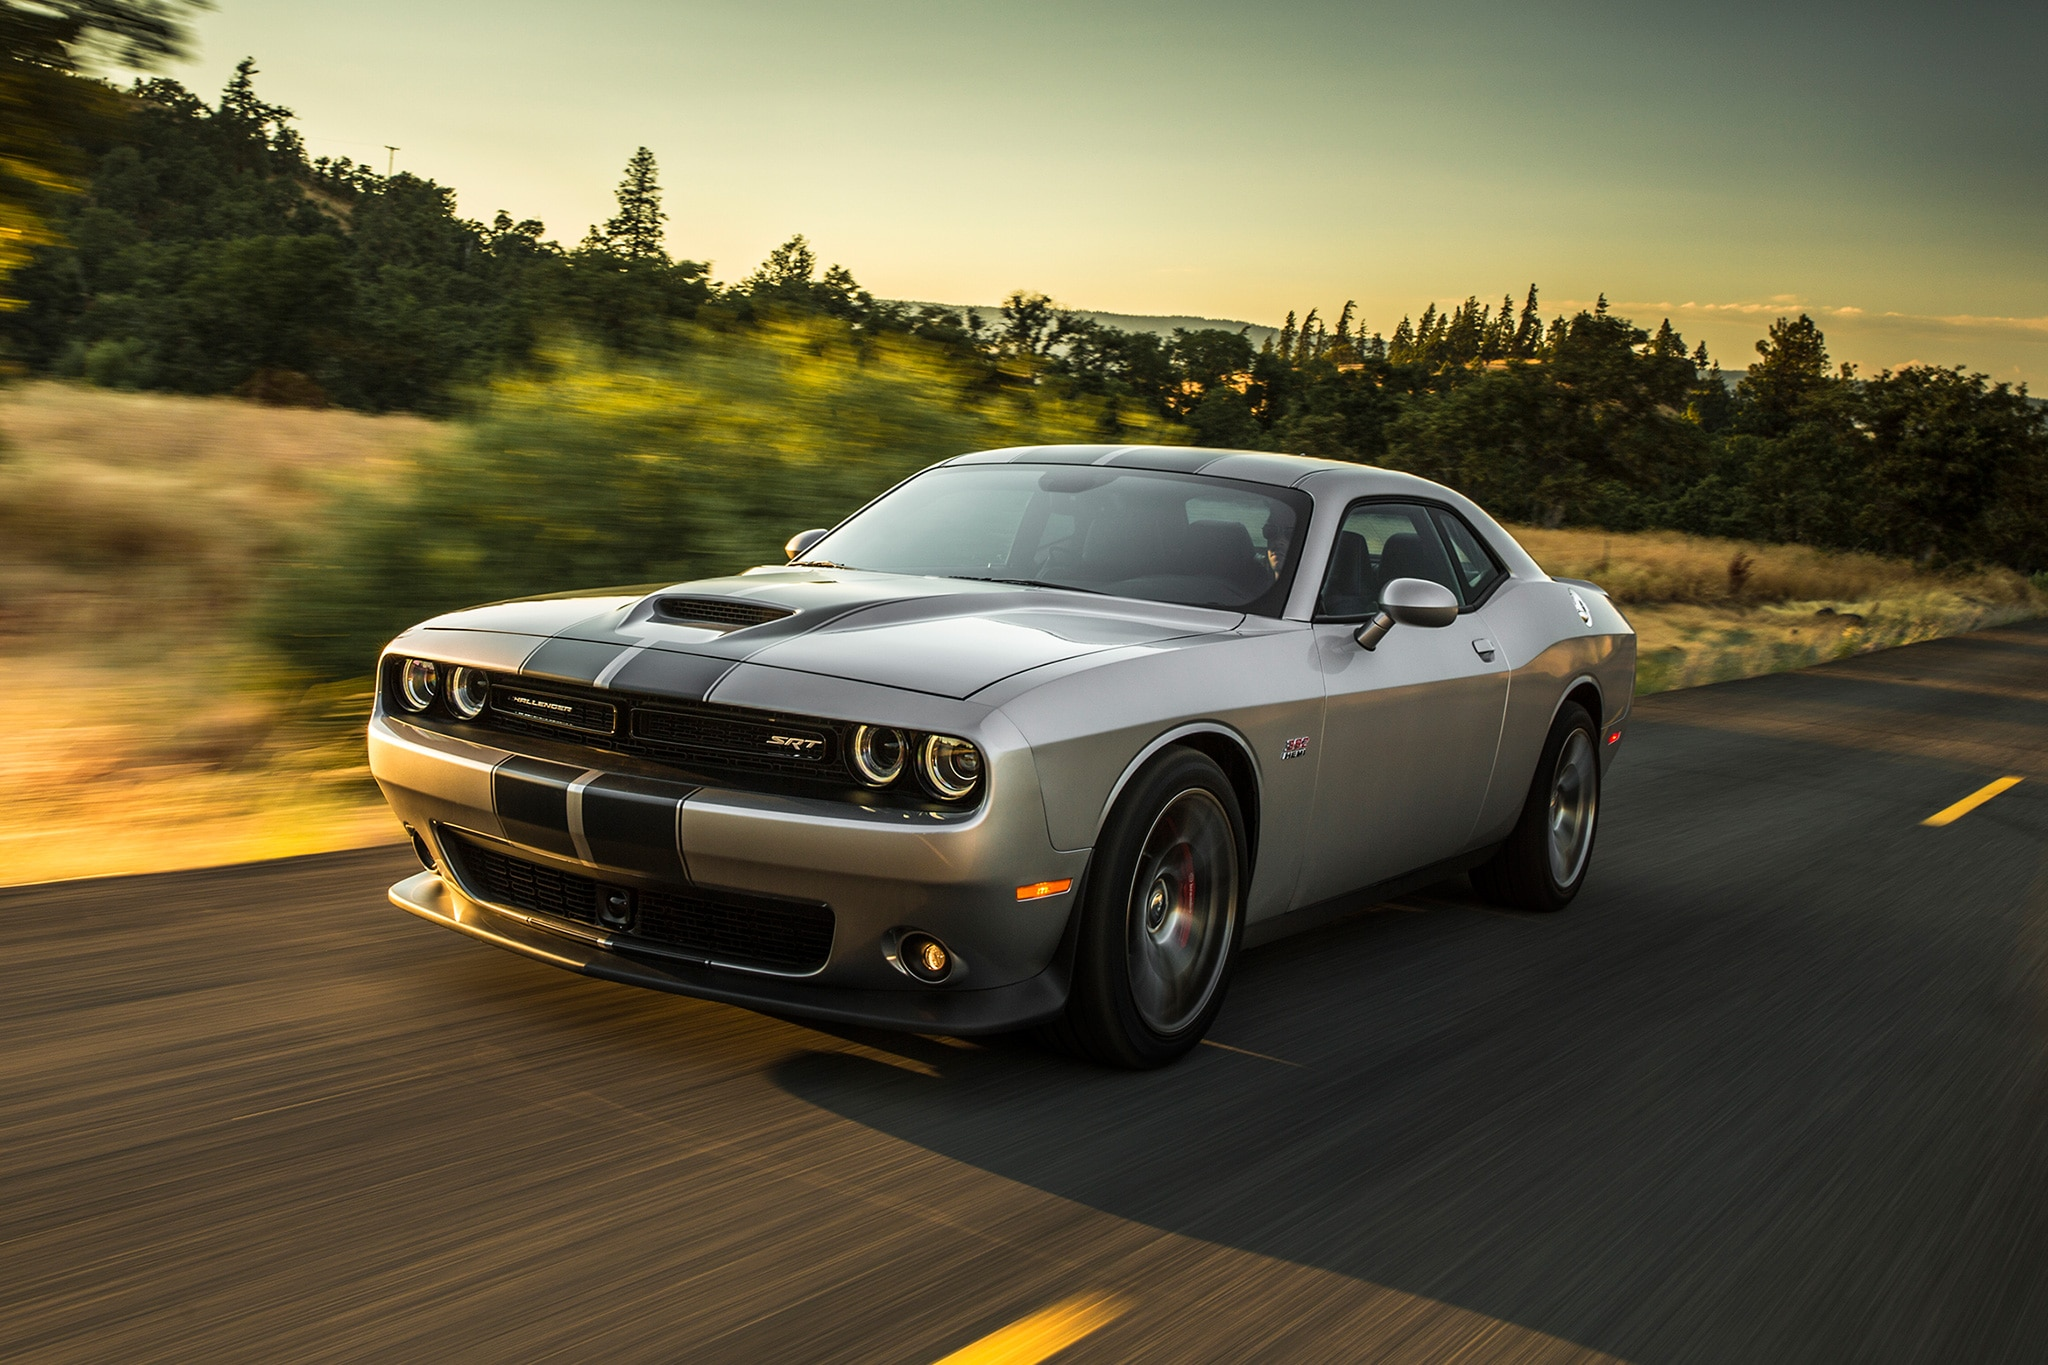 Doge Charger 2017 >> 2017 Dodge Challenger T/A and Charger Daytona Add Retro Flair, More Muscle | Automobile Magazine